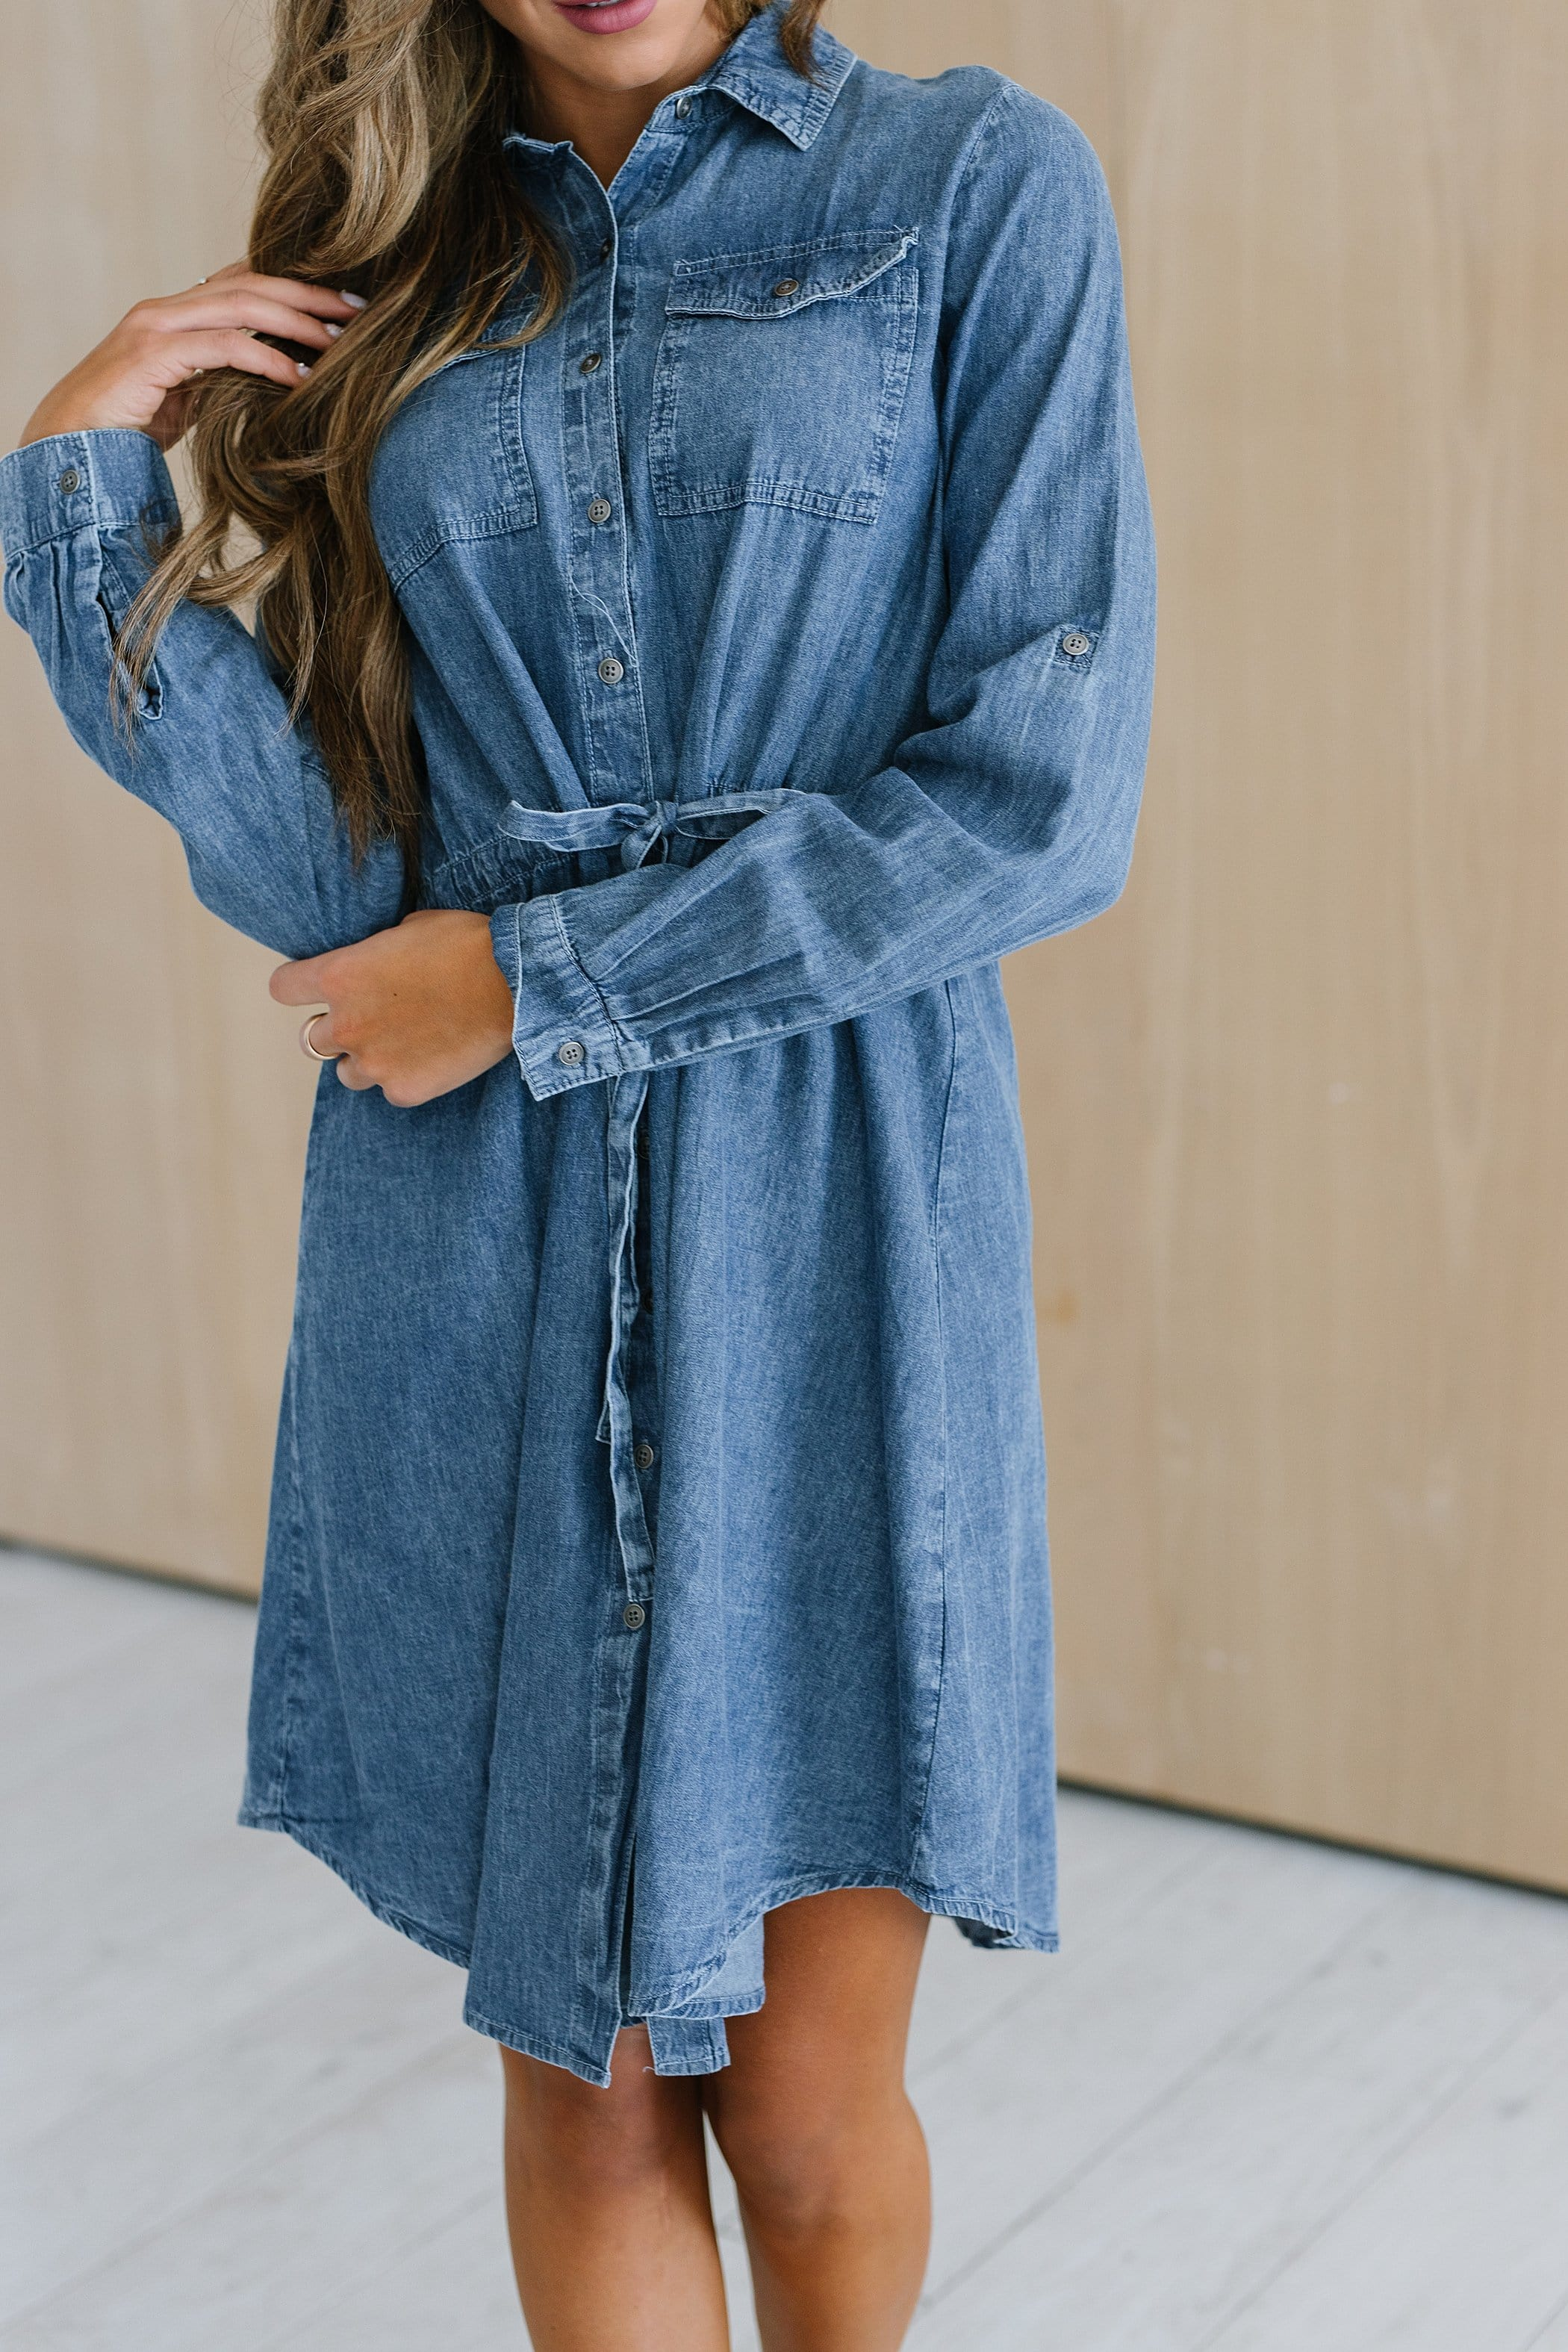 The Tripp Chambray Dress in Medium Wash